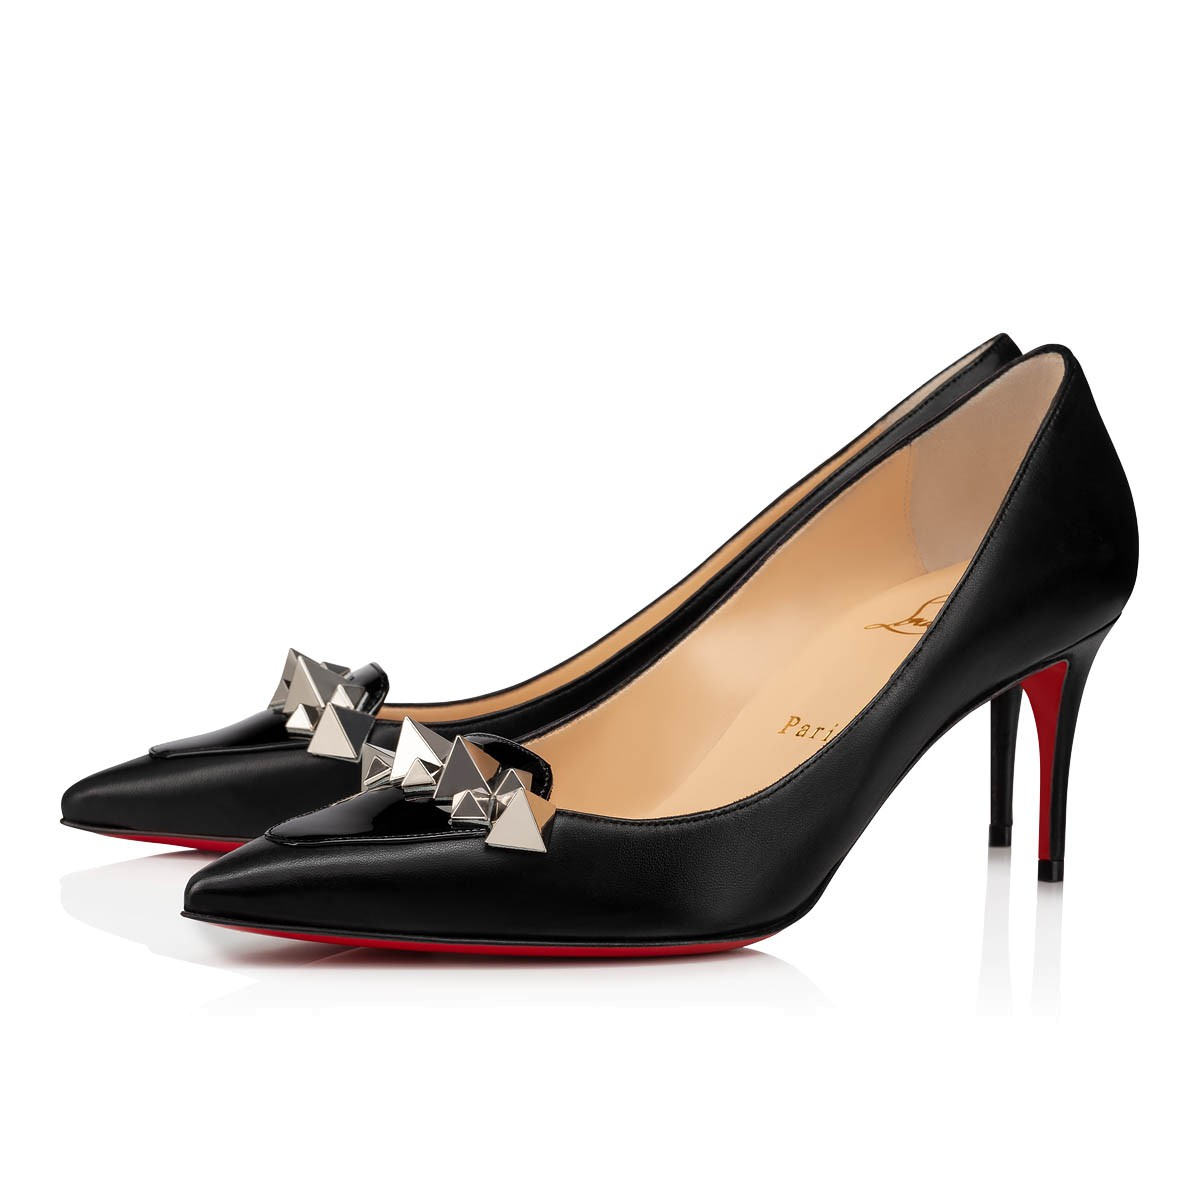 Souliers - Miss Constella - Christian Louboutin